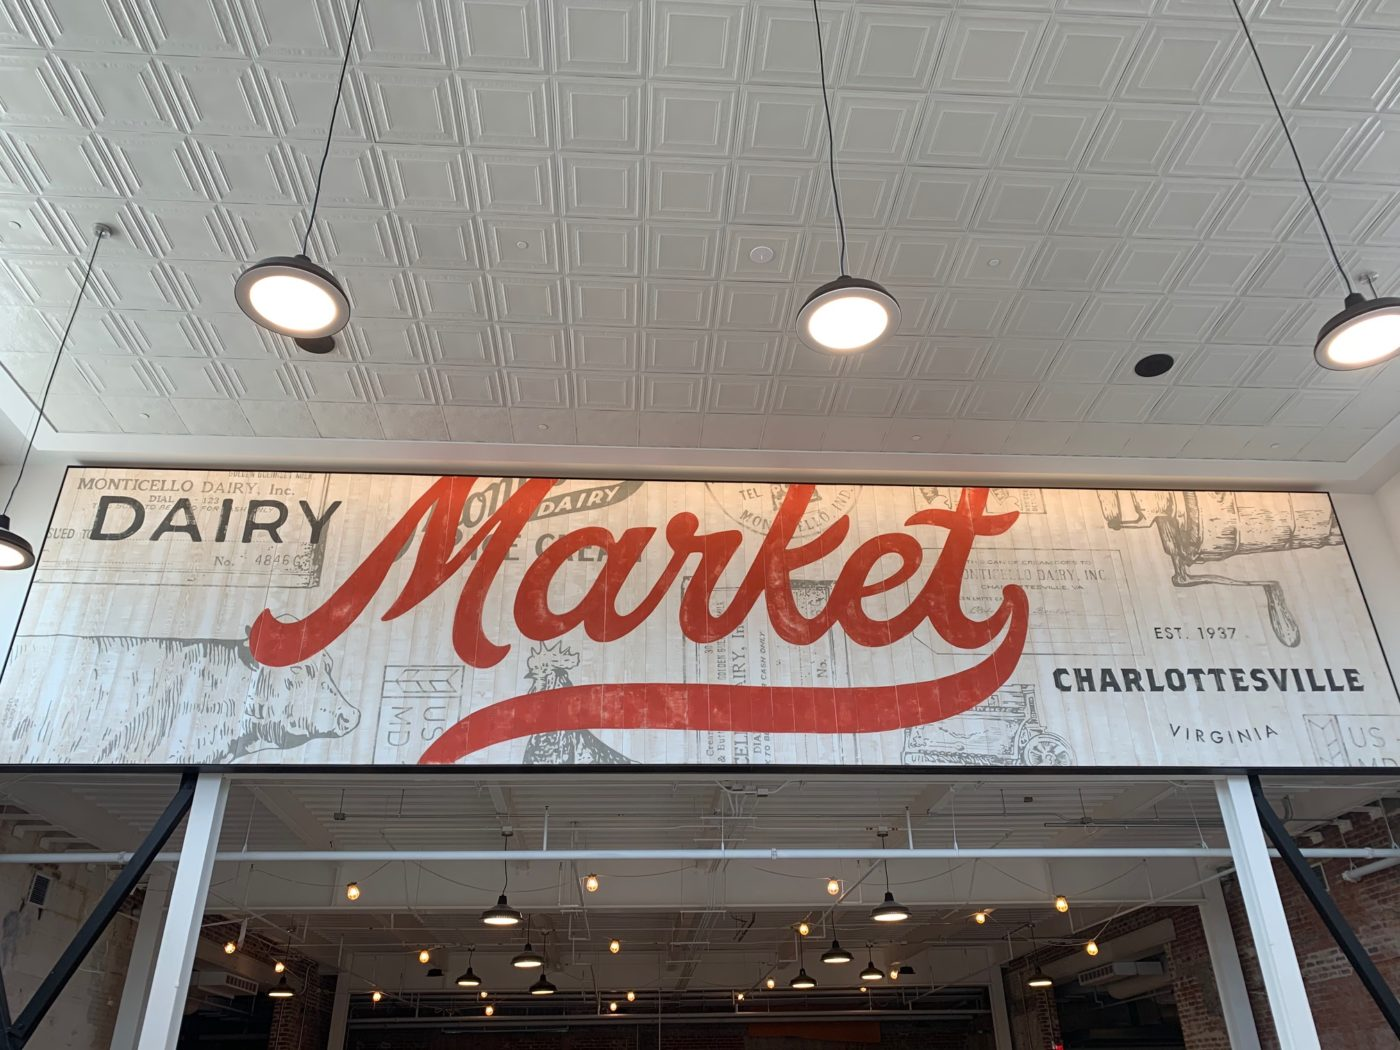 Entrance Sign to Dairy Market - says